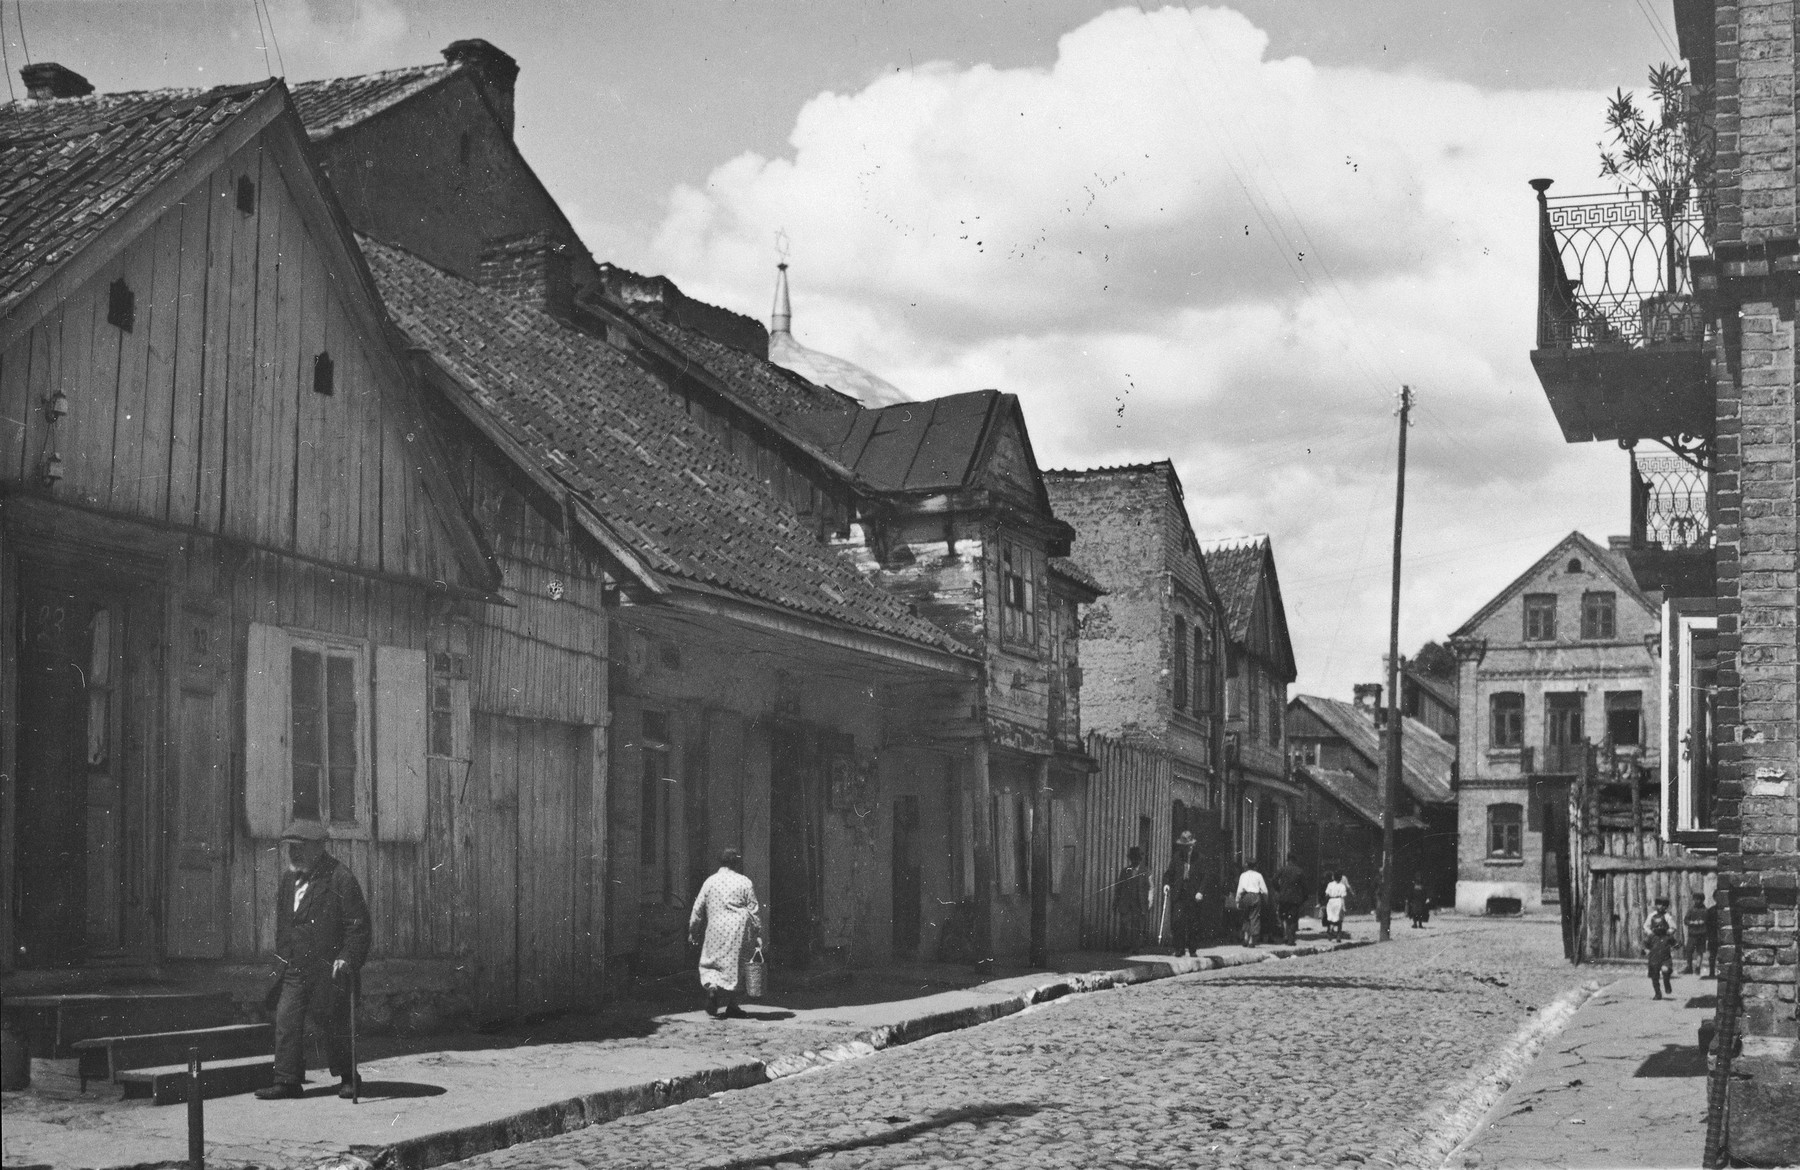 View of a street with wooden houses in prewar Bialystok.